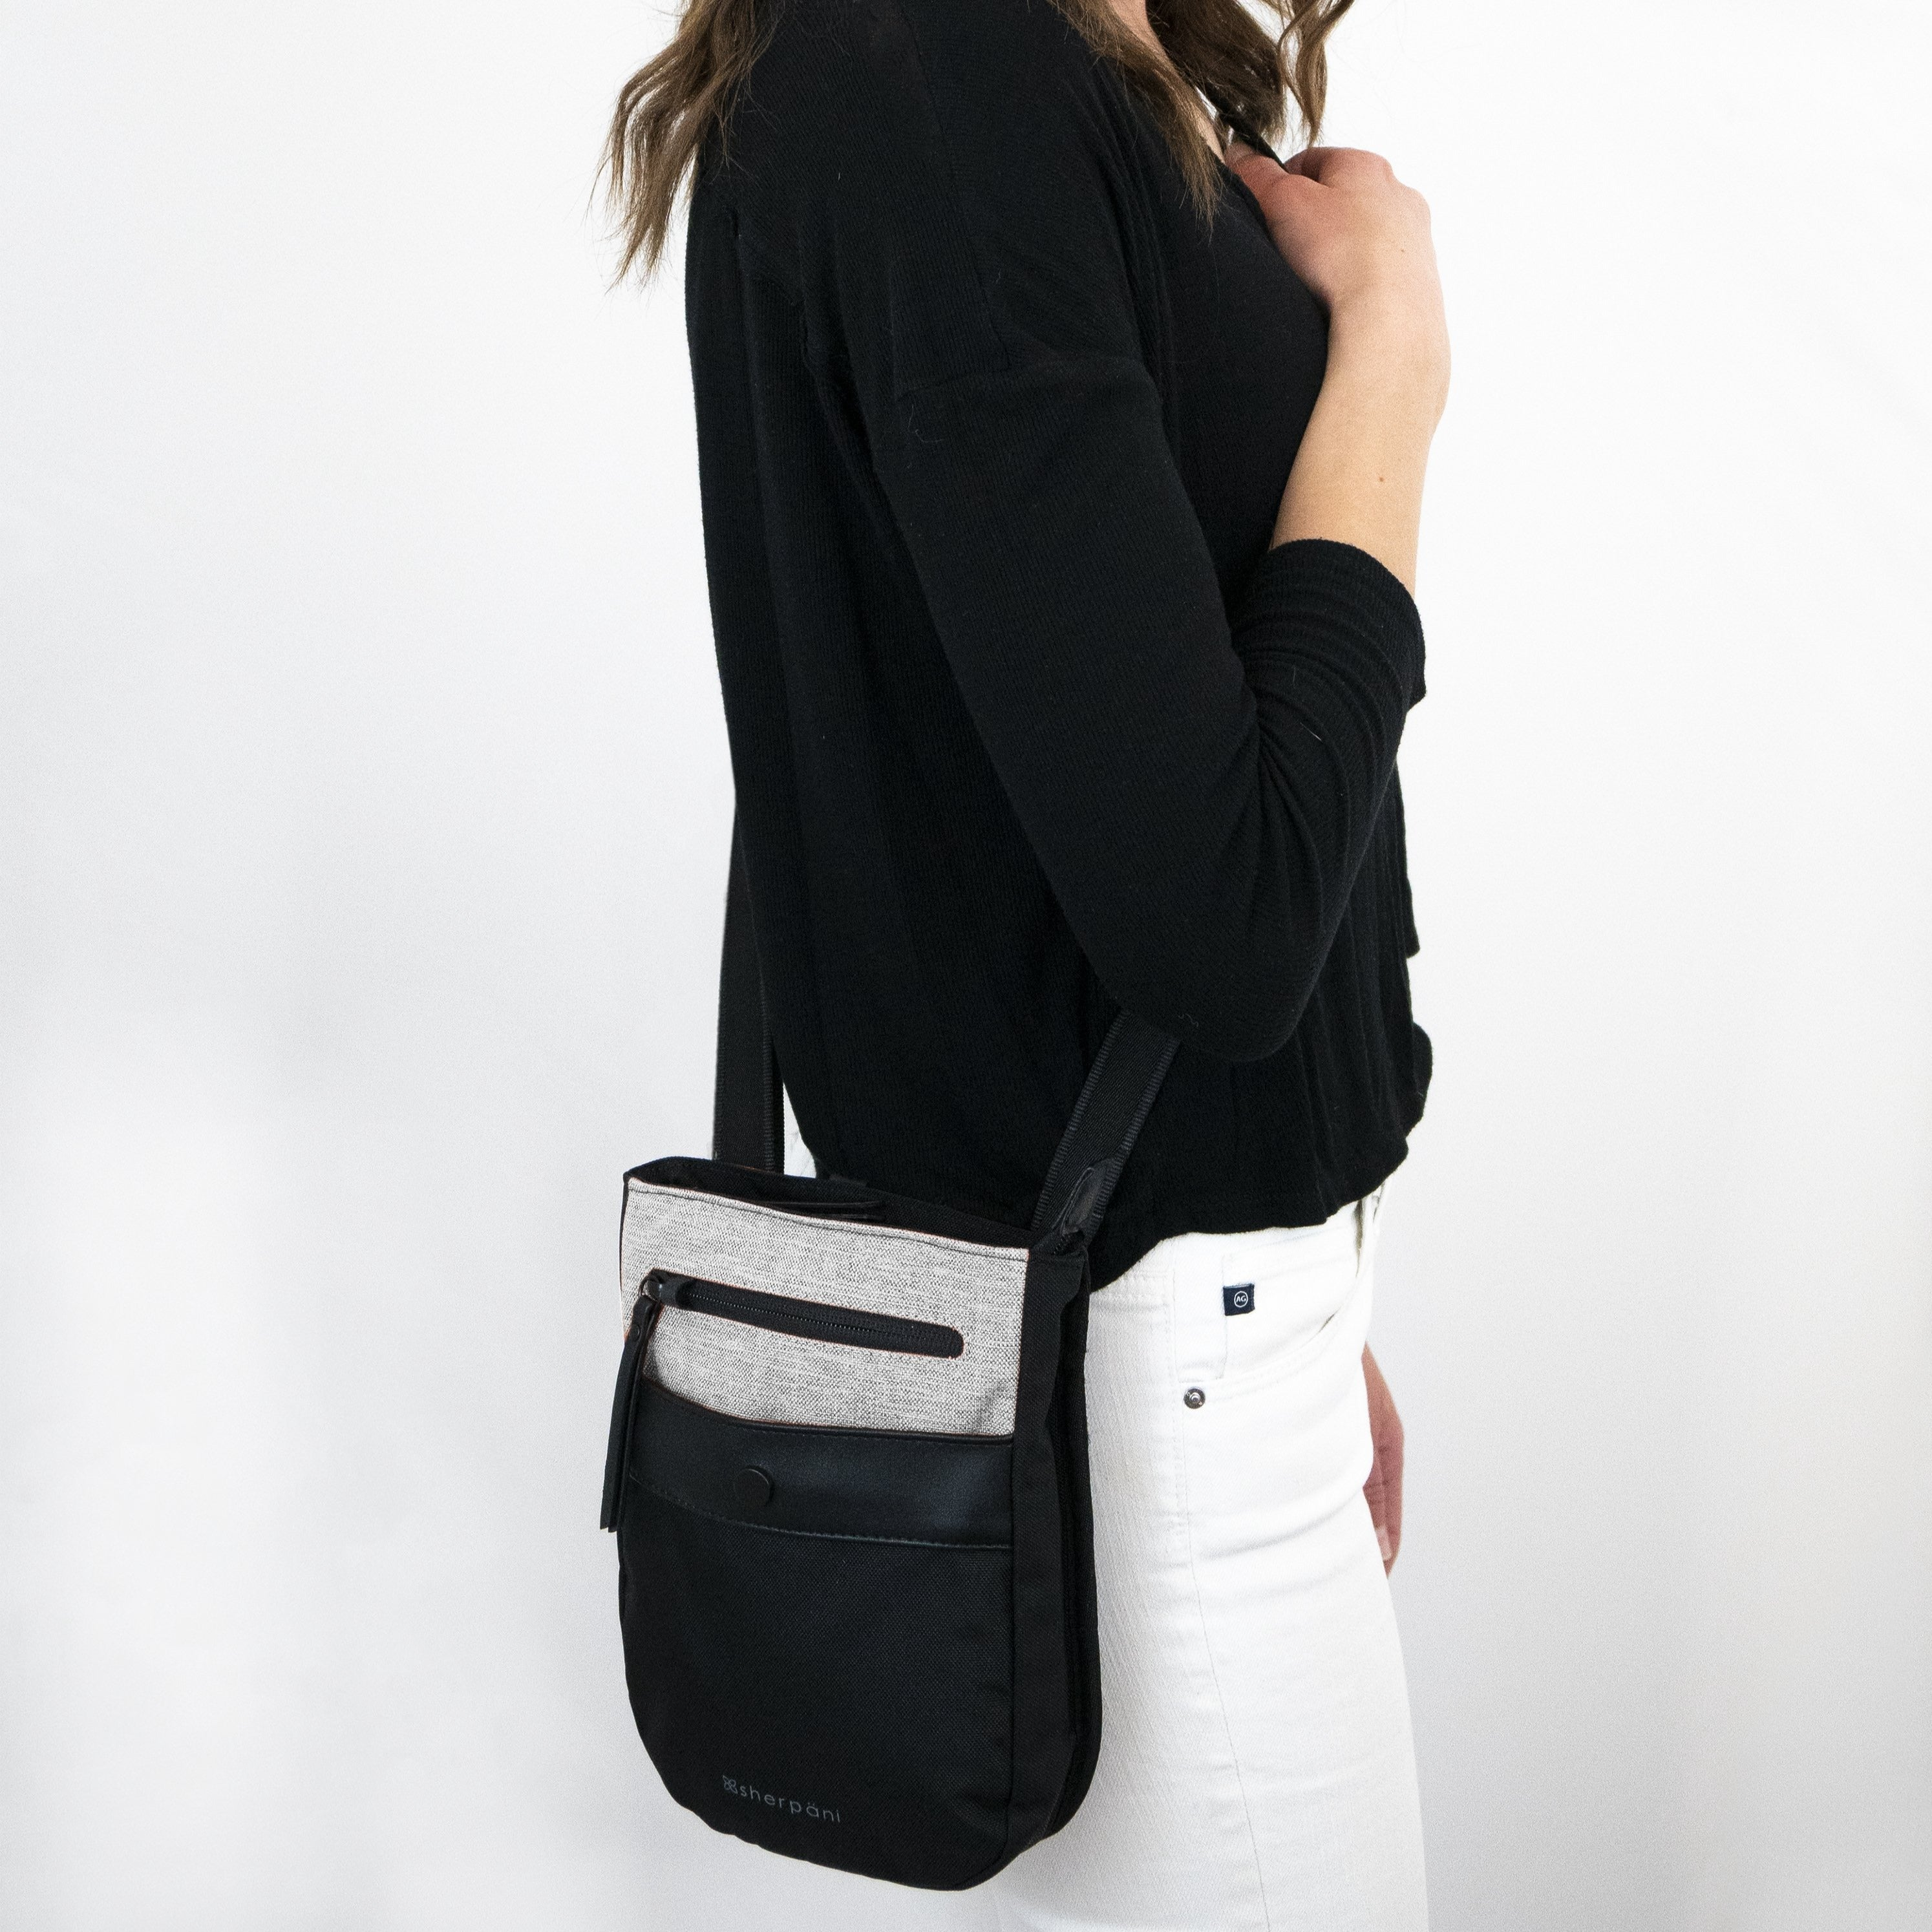 White Anti-theft Crossbody (worn as crossbody) with anti-theft features